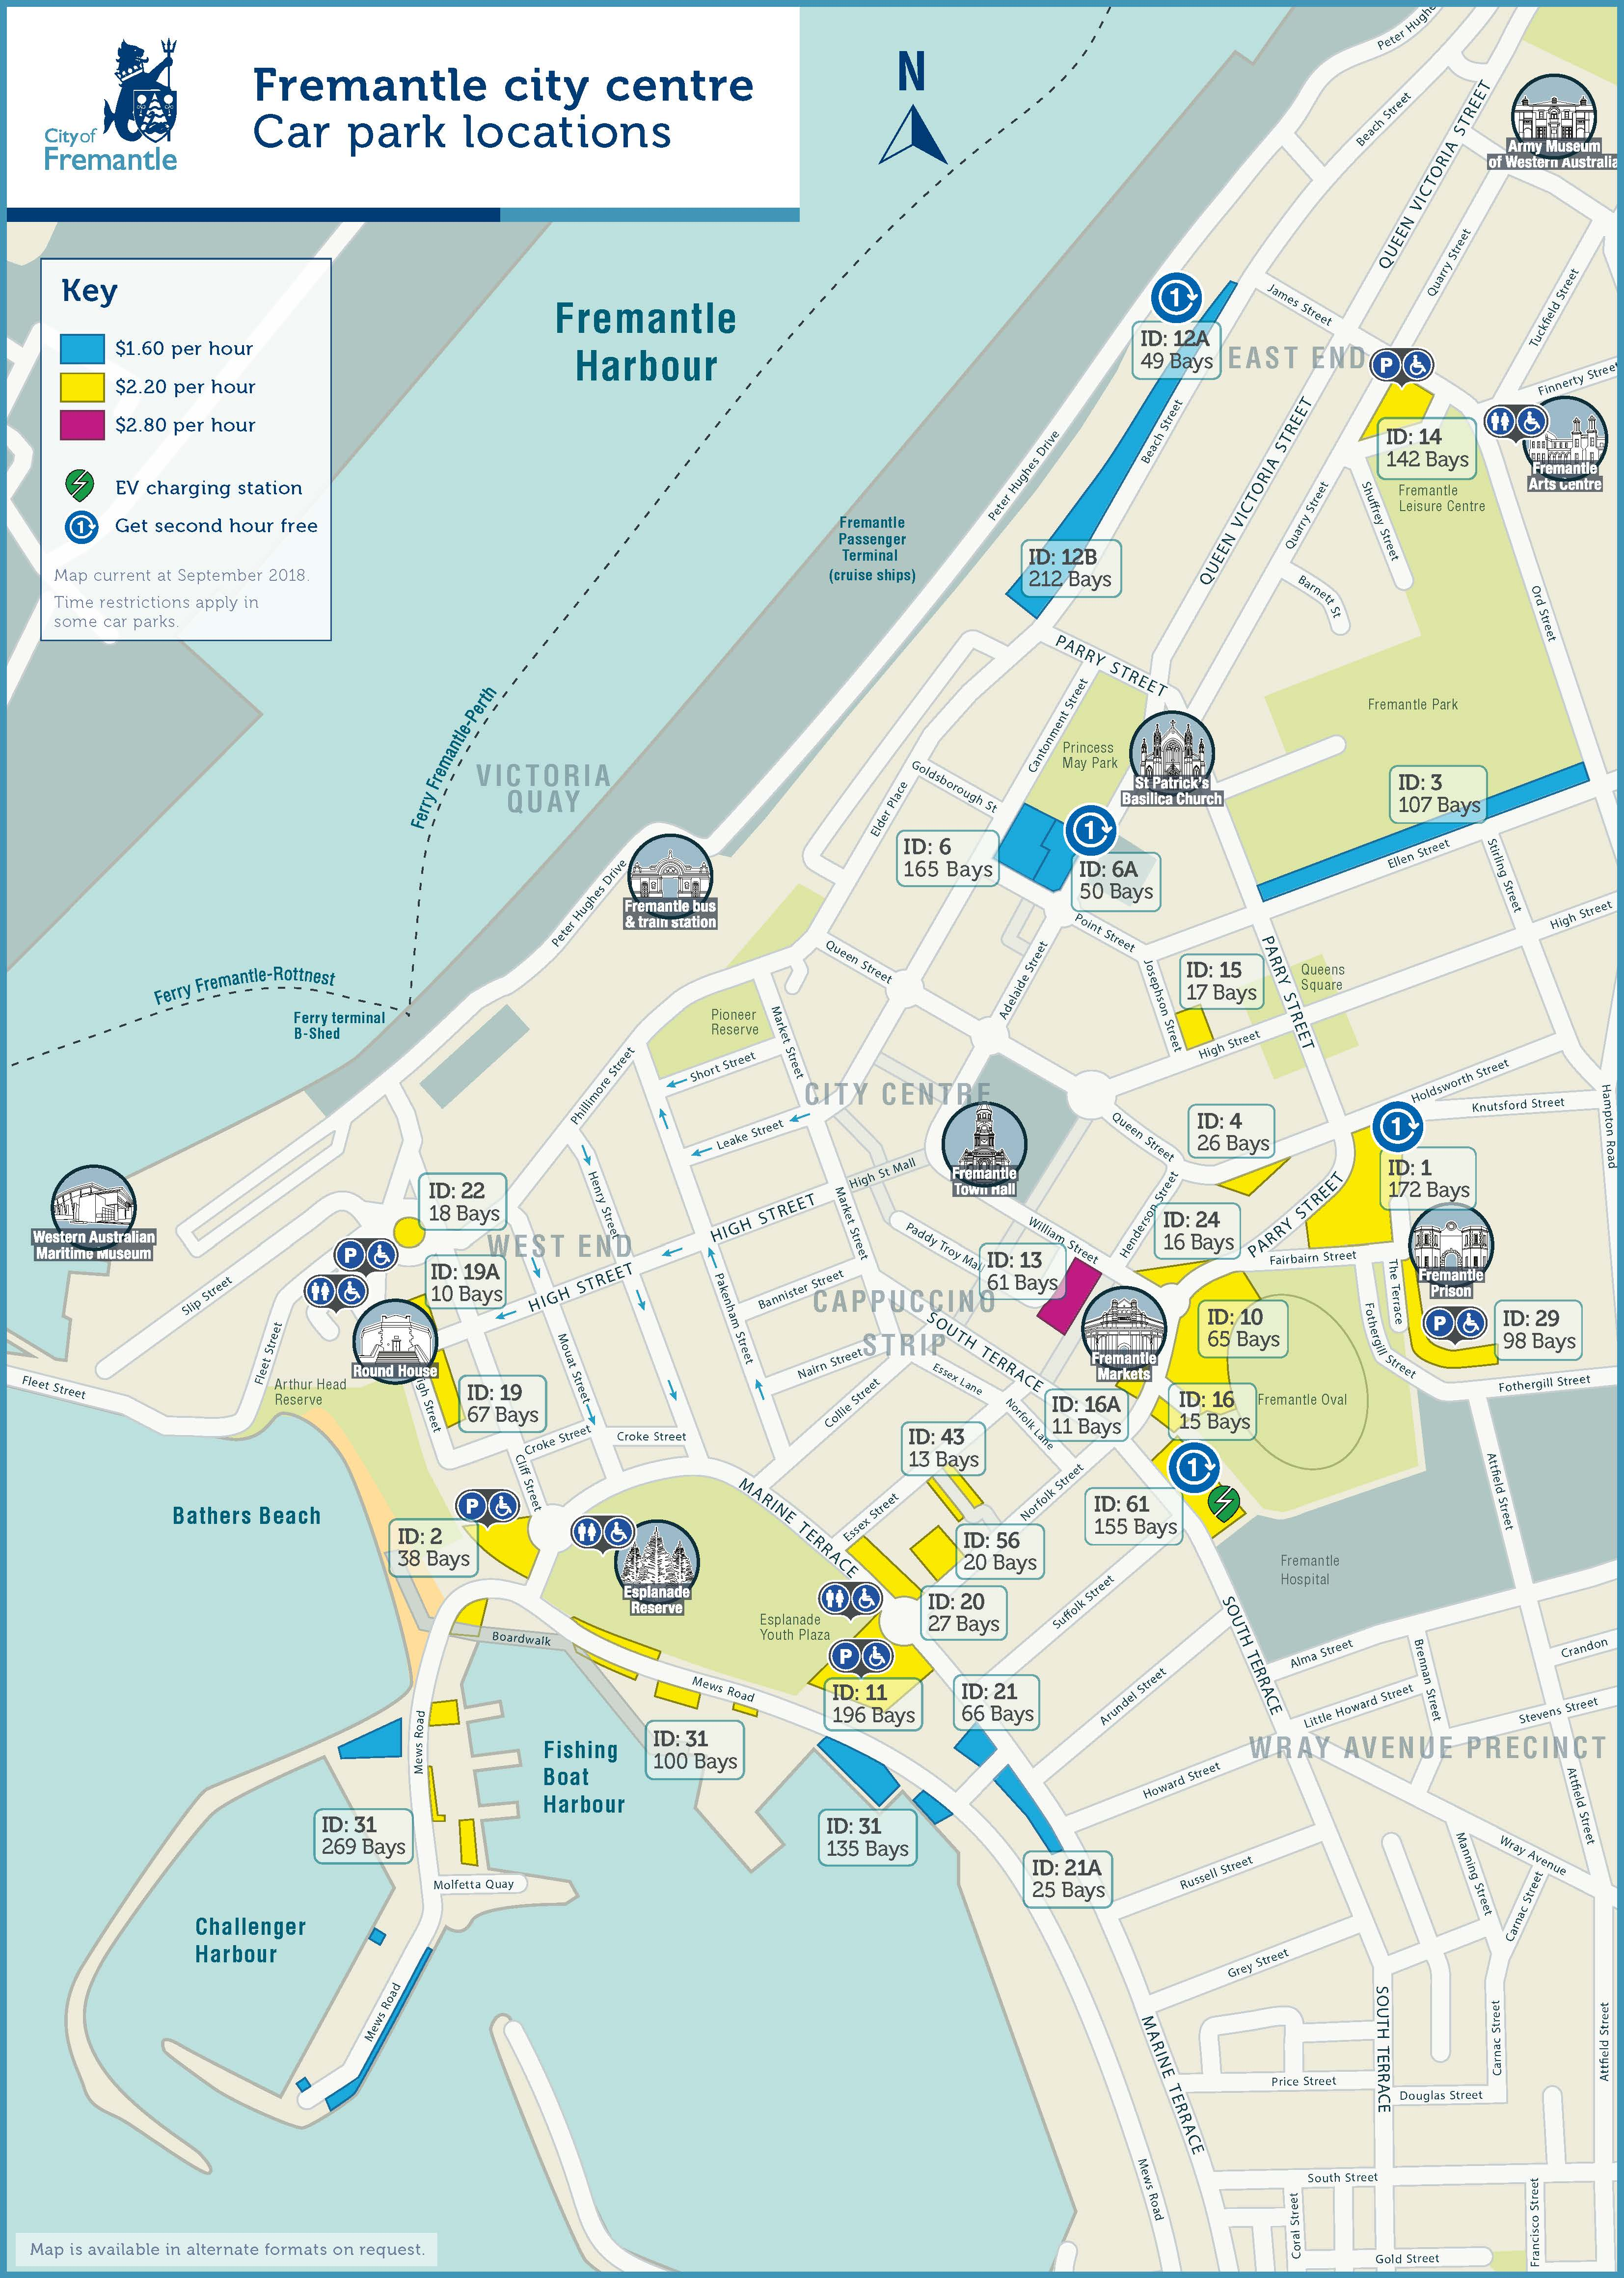 A parking map showing the car spots around Freo.